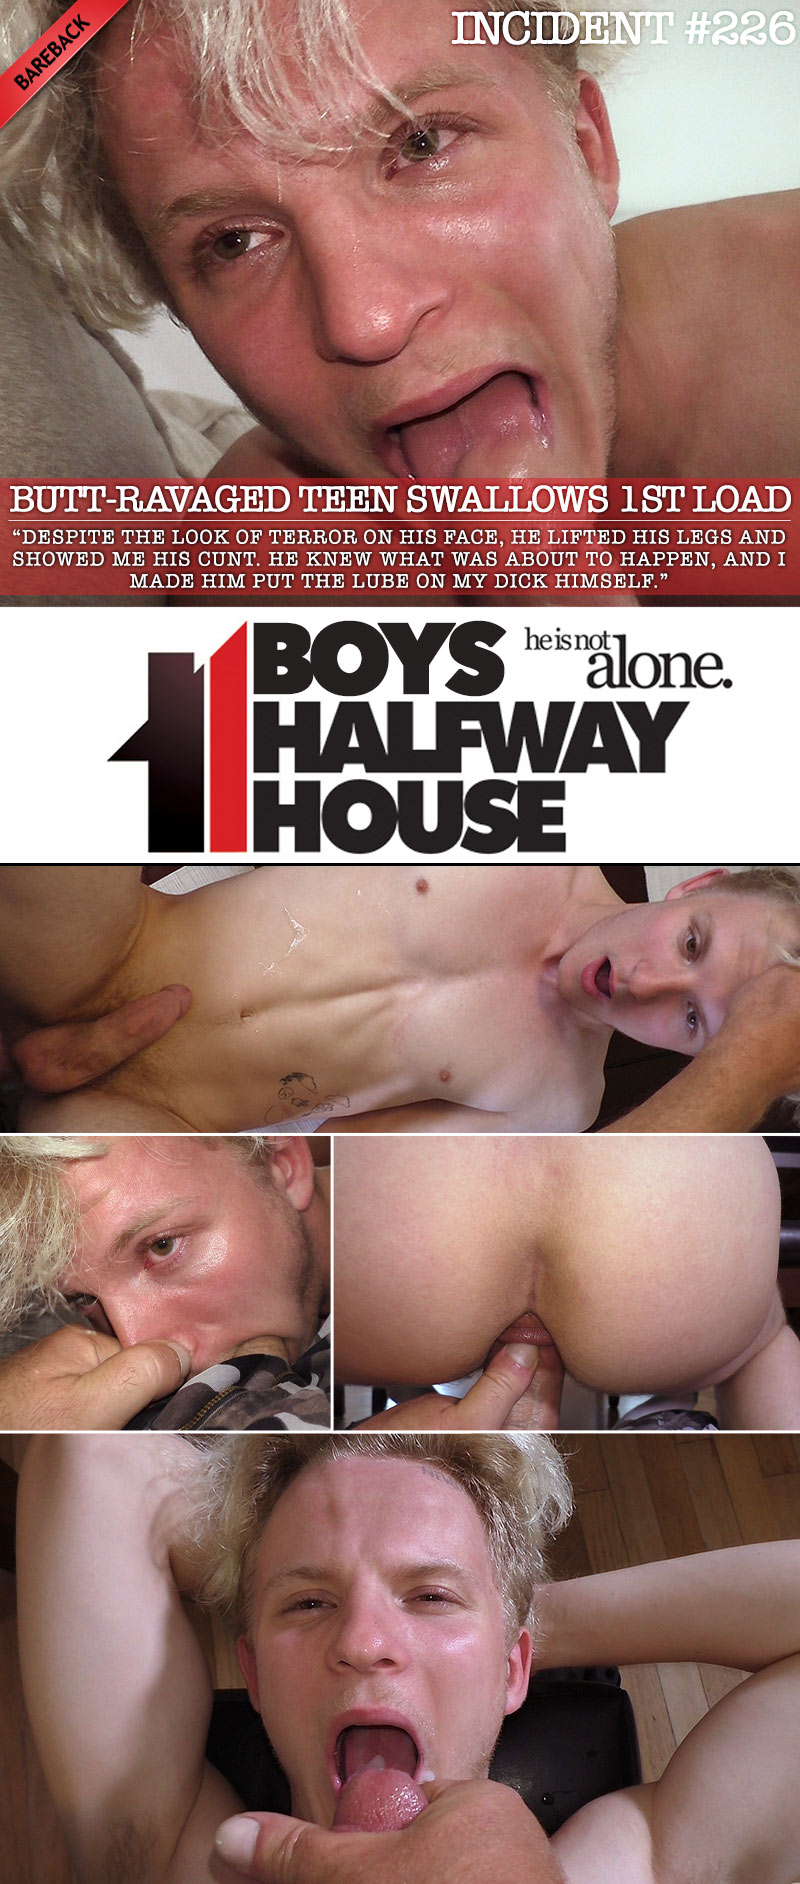 Incident #226: Butt-Ravaged Teen Swallows 1st Load (with Malachi Rayne) at Boys Halfway House